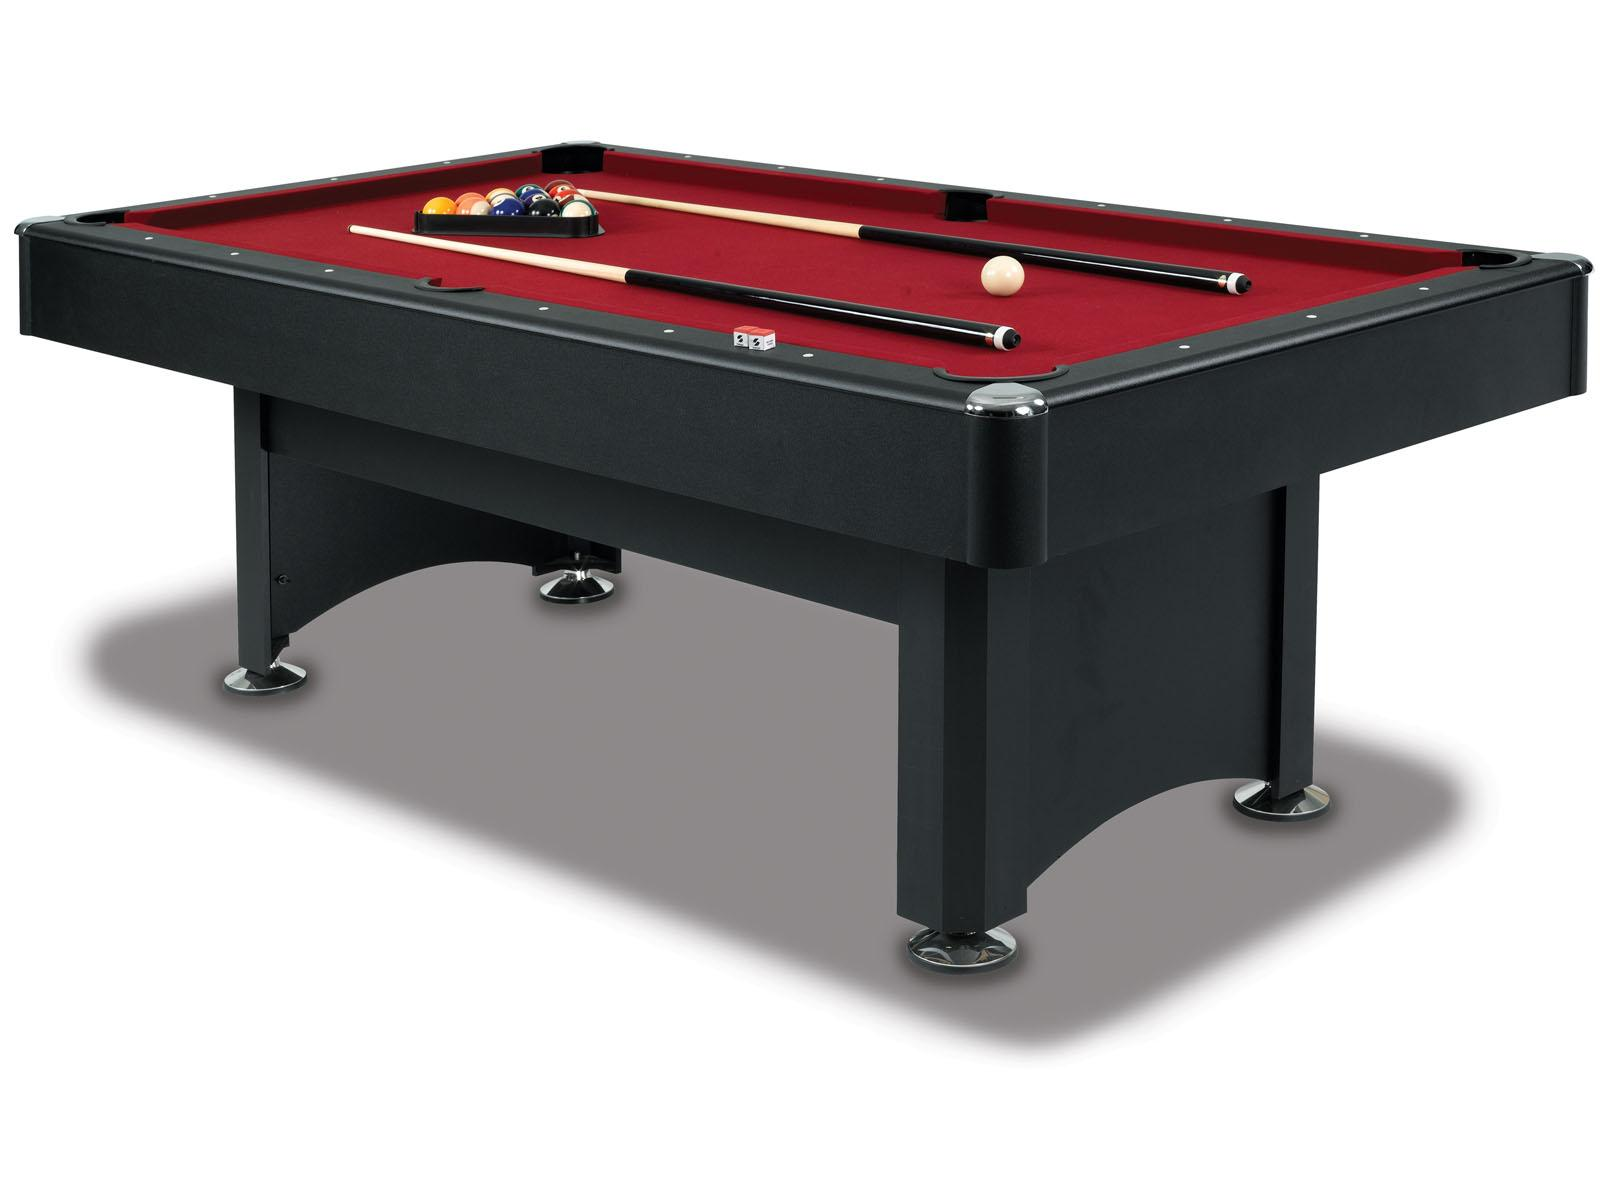 Shop Scottsdale Inch Billiard Table With Table Tennis Top Free - 84 pool table